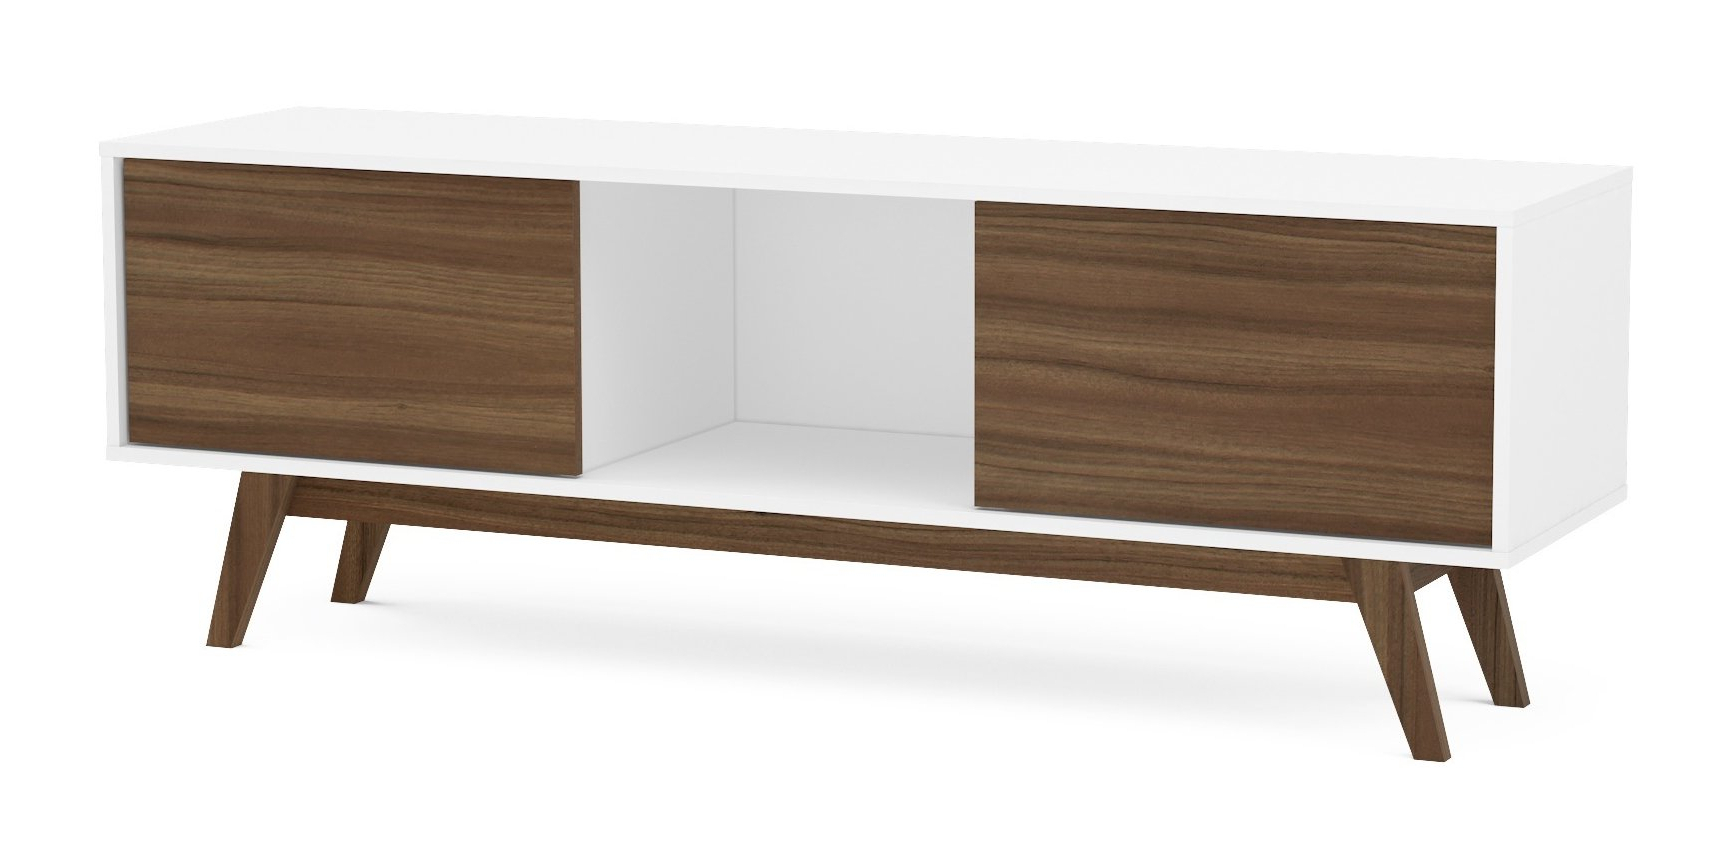 Contemporary Tv Stands For Flat Screens Within Latest Modern Tv Stands & Entertainment Centers (View 6 of 20)